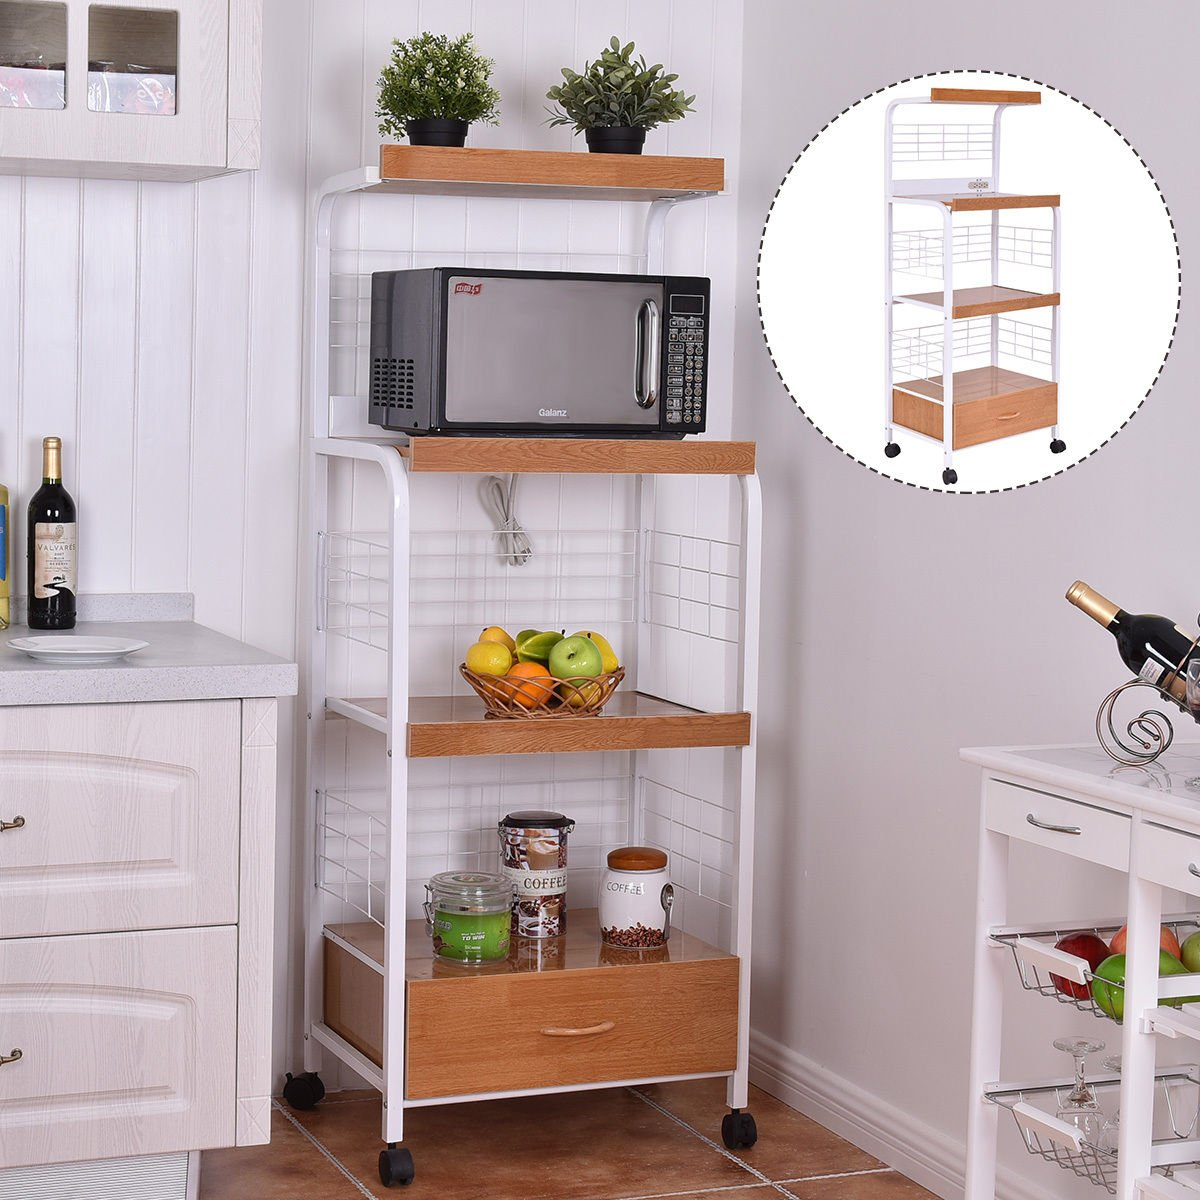 GJH One Bakers Rack Microwave Stand Rolling Kitchen Storage Cart w/Electric Outlet 62'' by GJH One (Image #3)